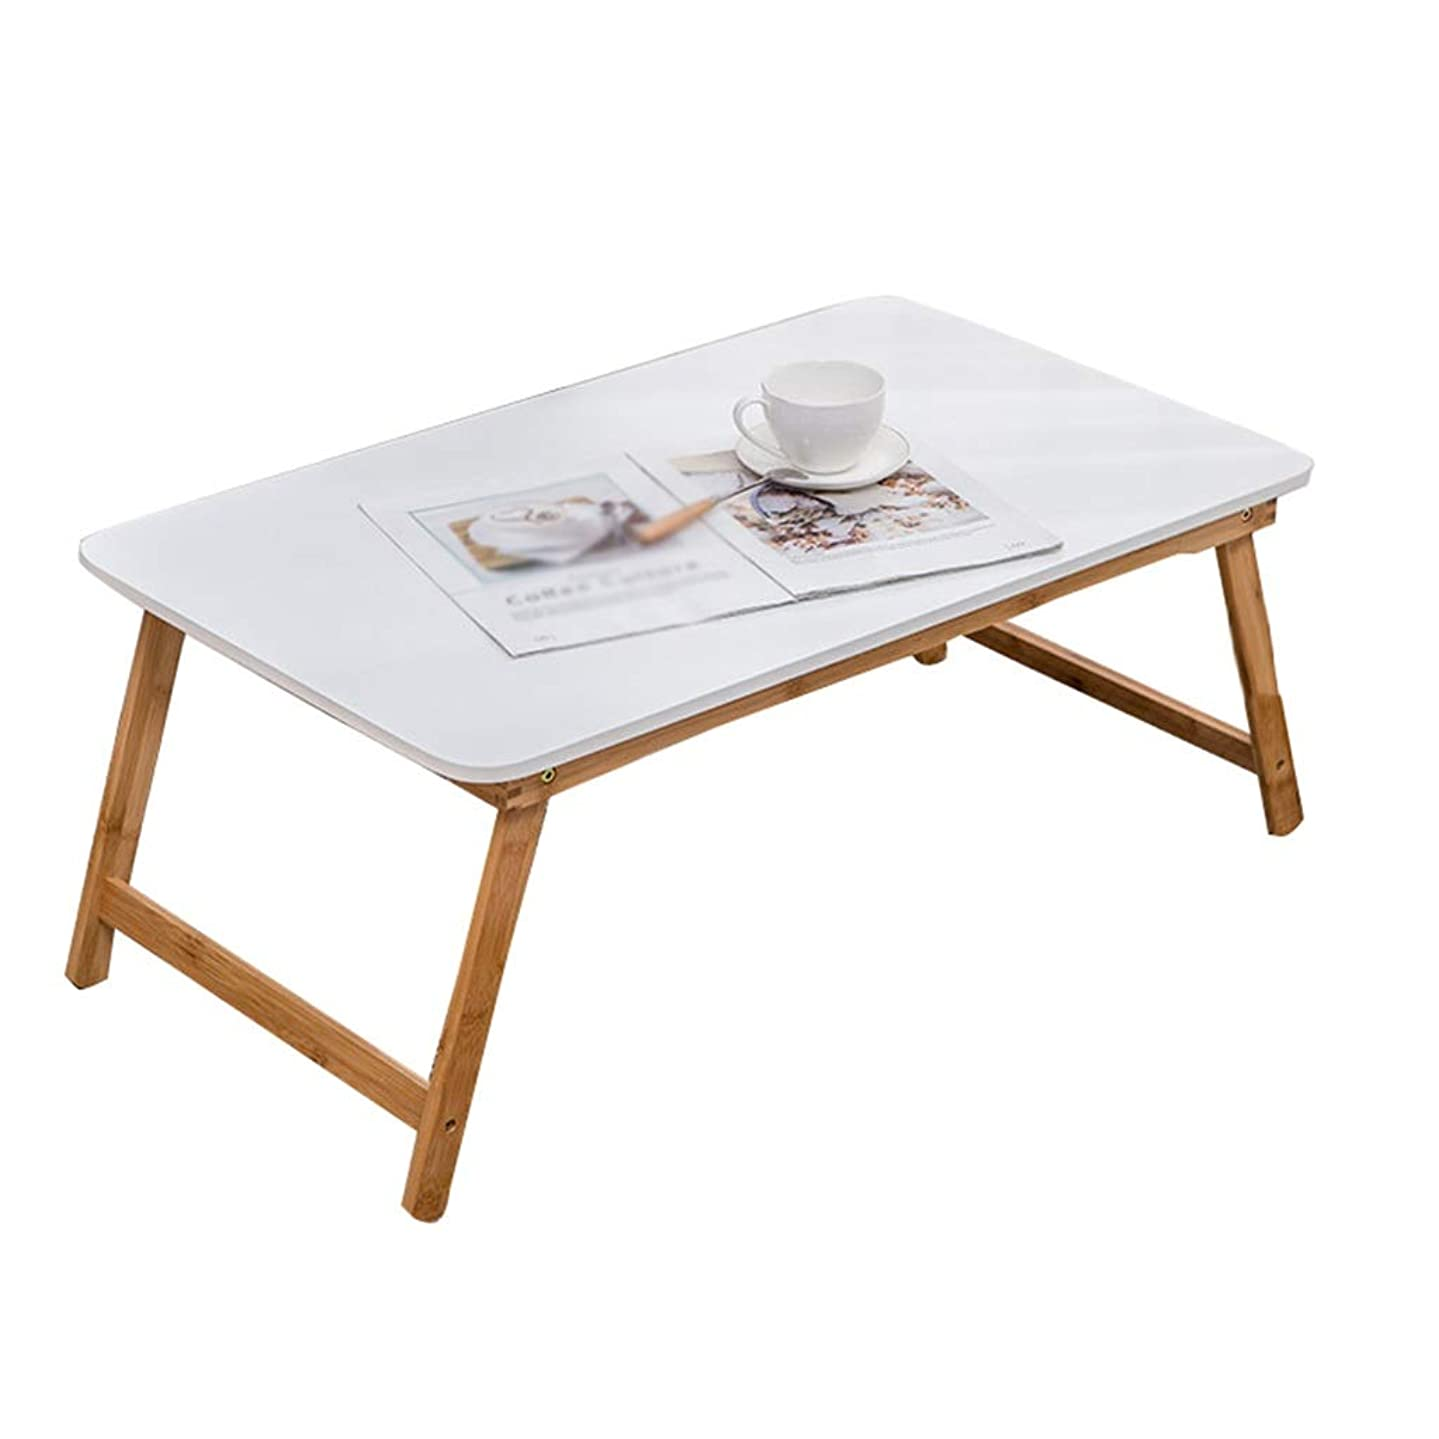 C-J-Xin Children's Table, Living Room Bedroom Floor Table Coffee Table Study Children's Room Study Table Laptop Table Bed Breakfast Tray Household Table (Size : 804834CM)